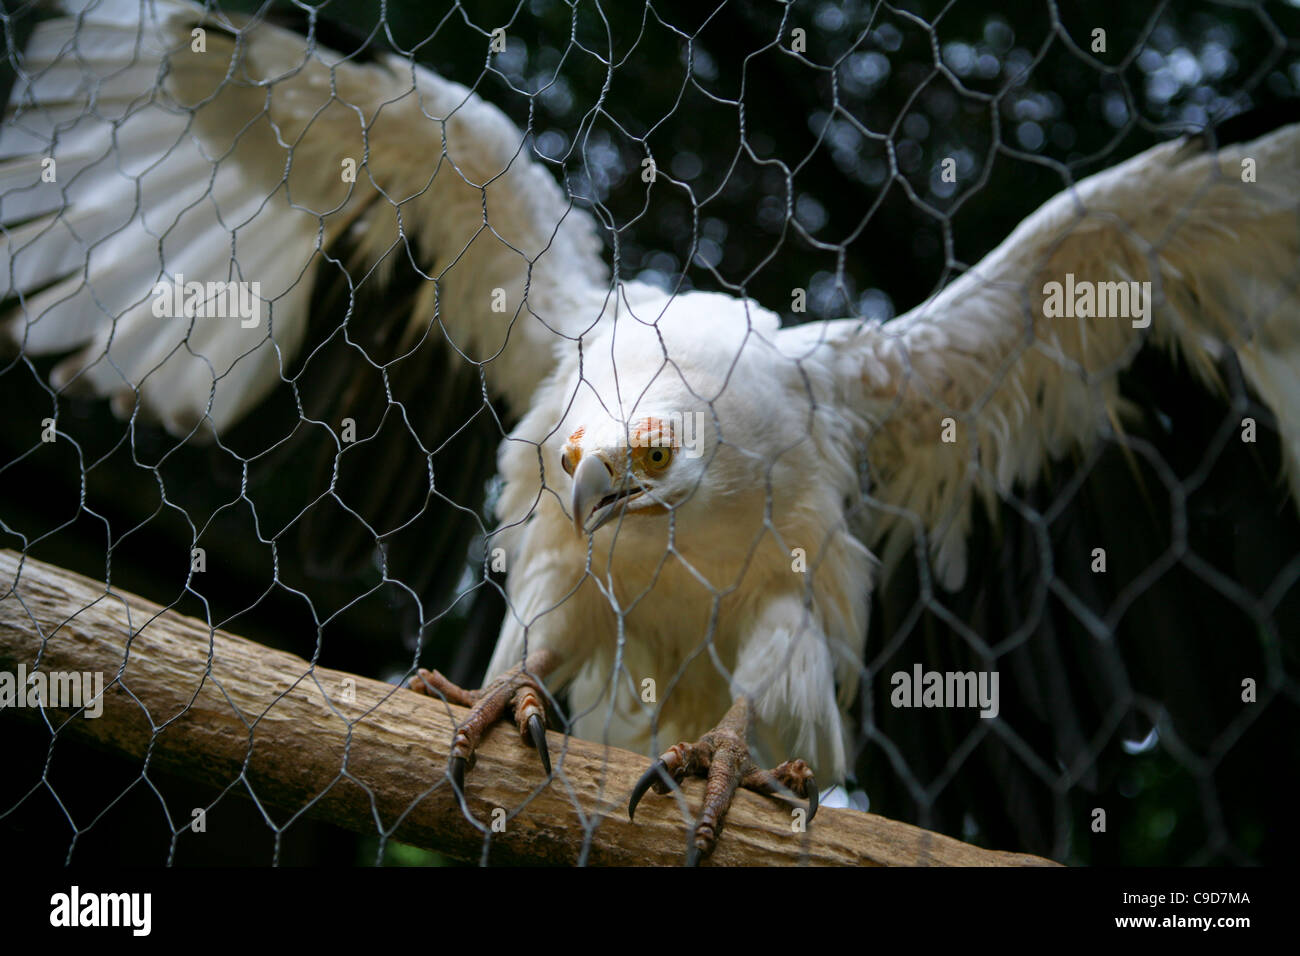 Gypohierax angolensis, Palm-nut Vulture / Vulturine Fish Eagle. A caged white vulture on a perch with outstretched - Stock Image